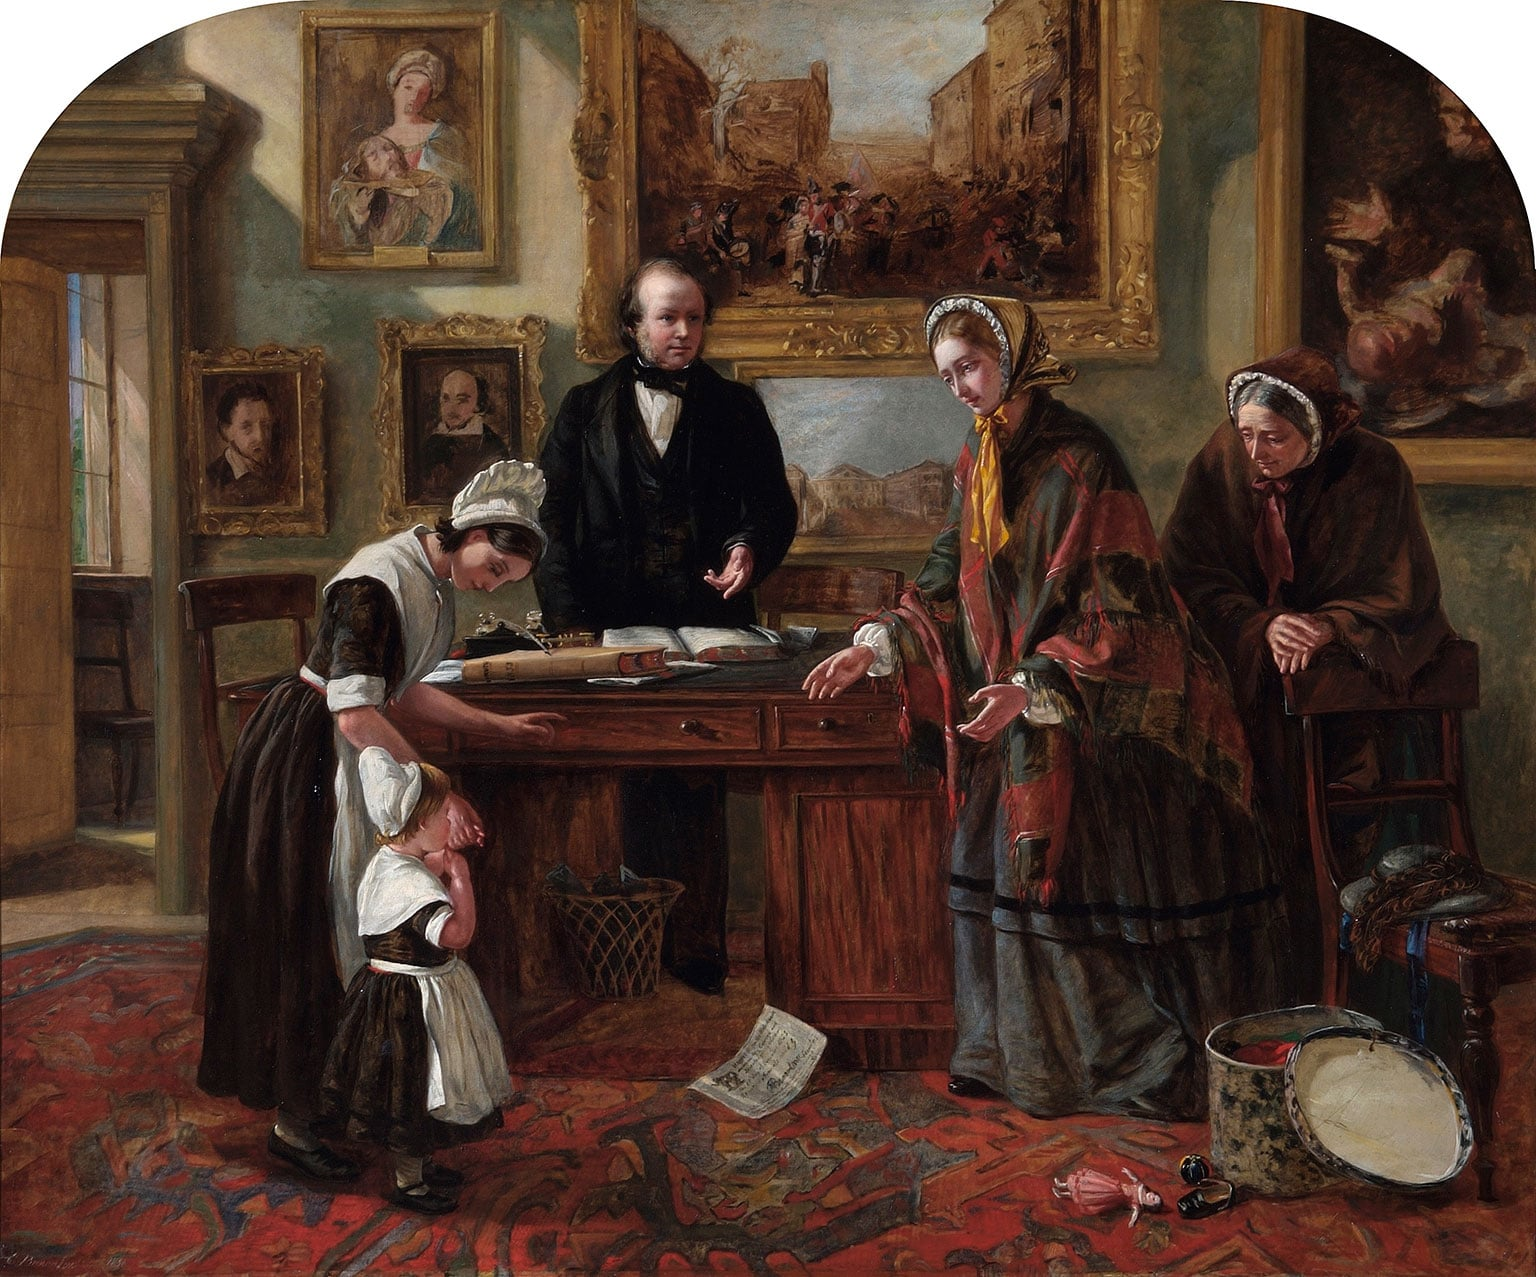 3. The Fallen Woman, The Foundling Museum - Emma Brownlo, The Foundling Restored to its Mother, 1858. Coram in the care of the Foundling-Museum